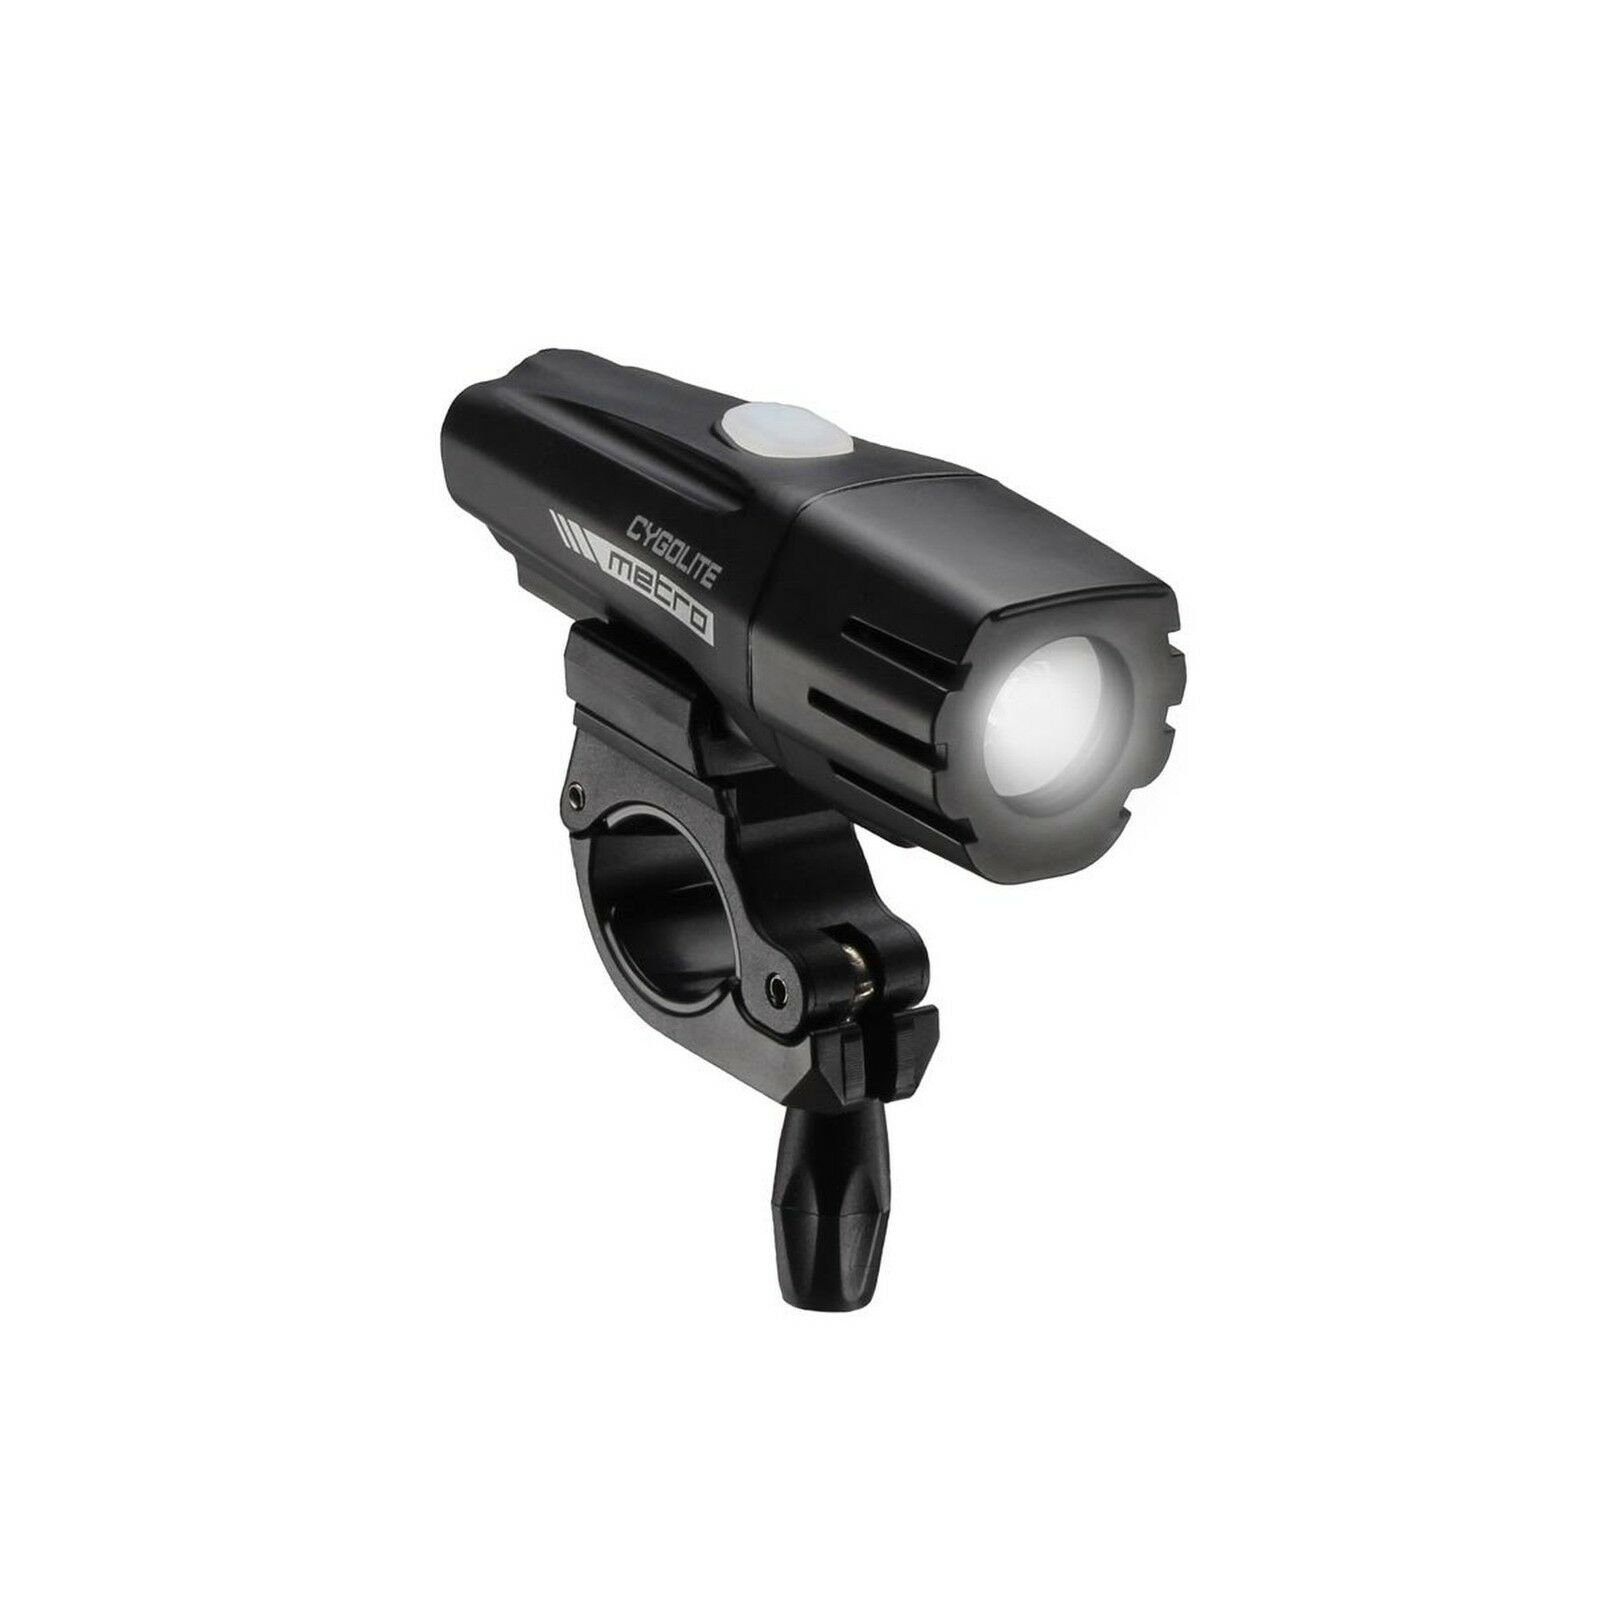 Cygolite  Metro 550 USB Light Free Shipping  great selection & quick delivery